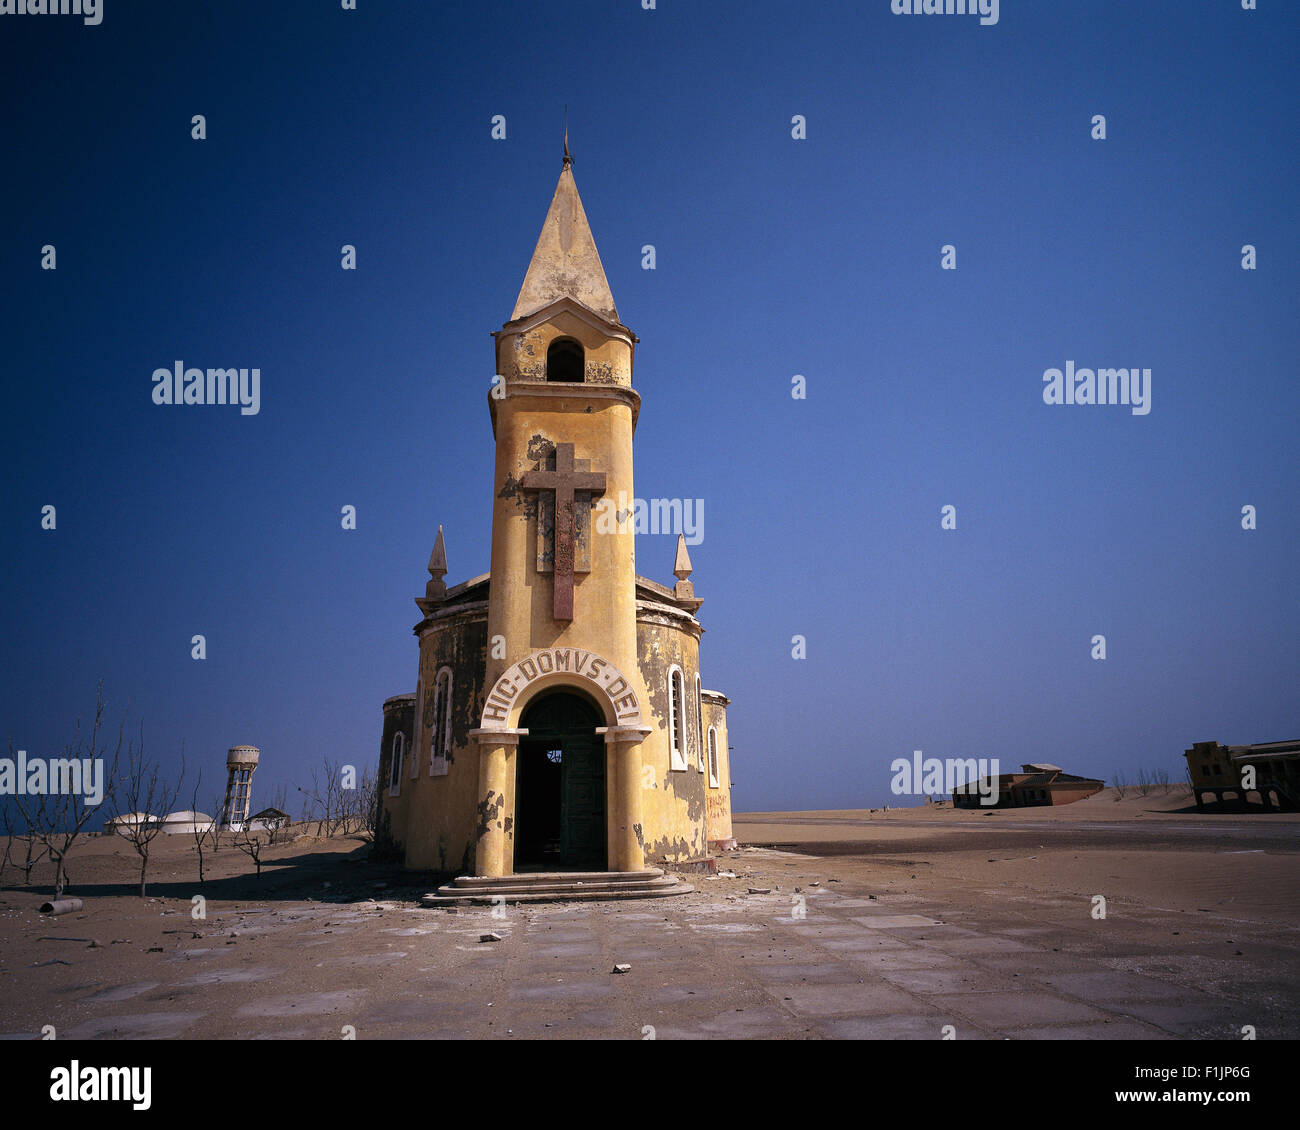 Deserted Church in Baia dos Tigres, Angola, Africa Stock Photo